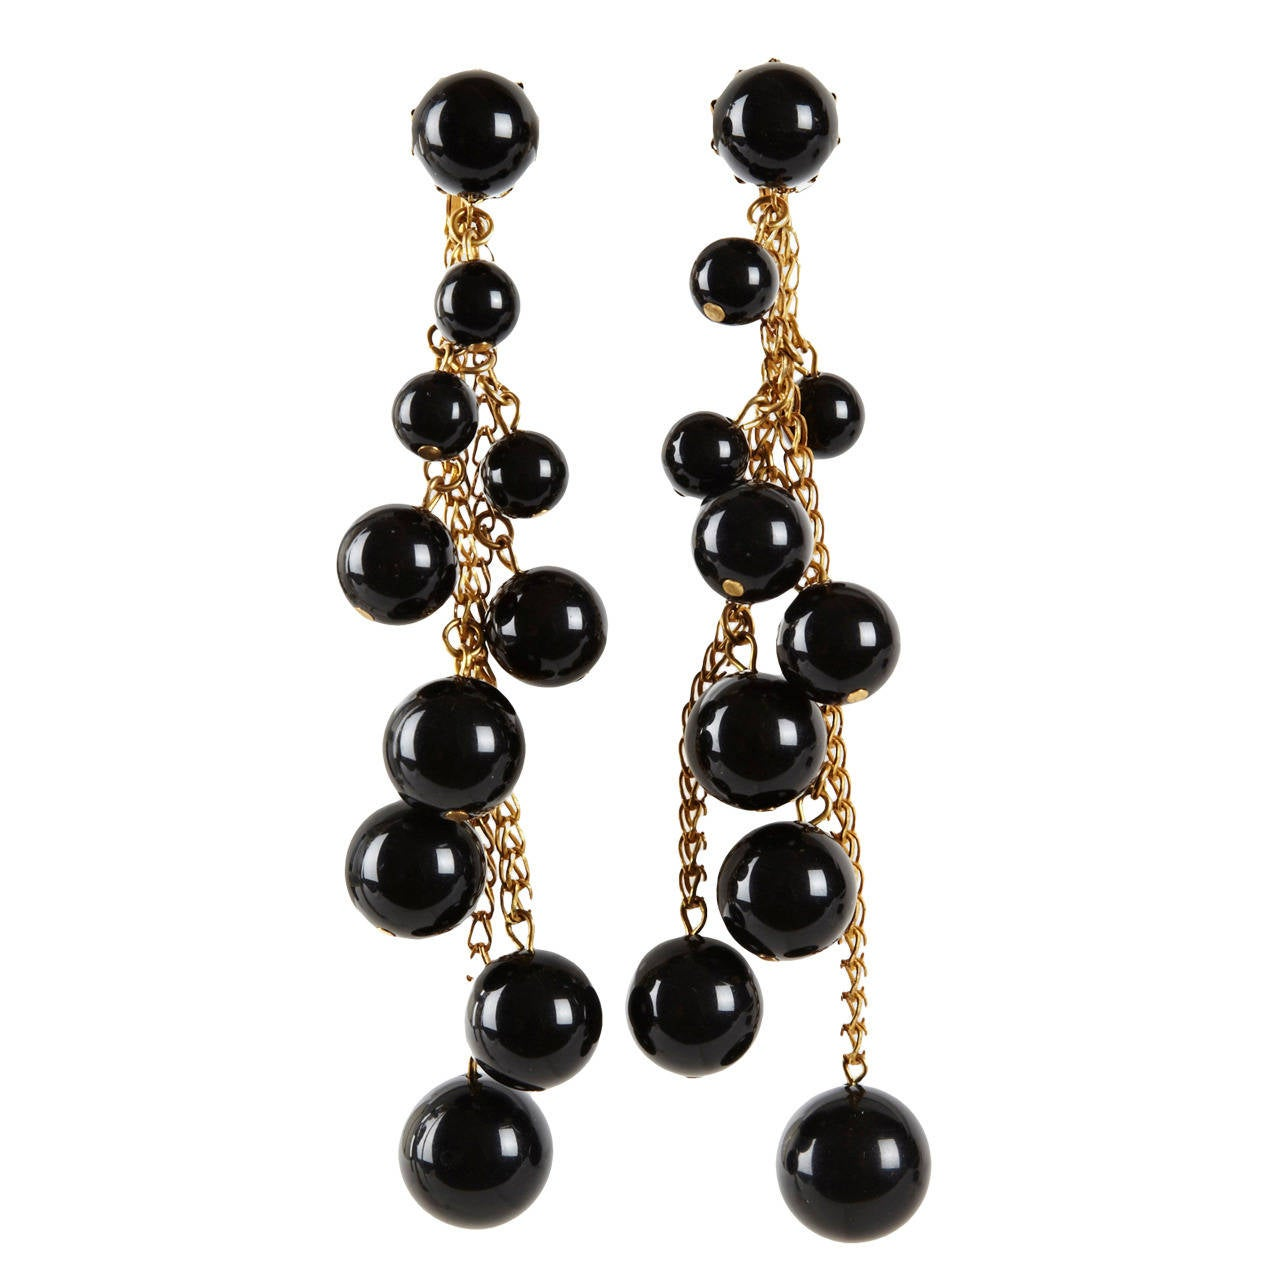 Miriam Haskell Black Bakelite Cascade Long Earrings At 1stdibs